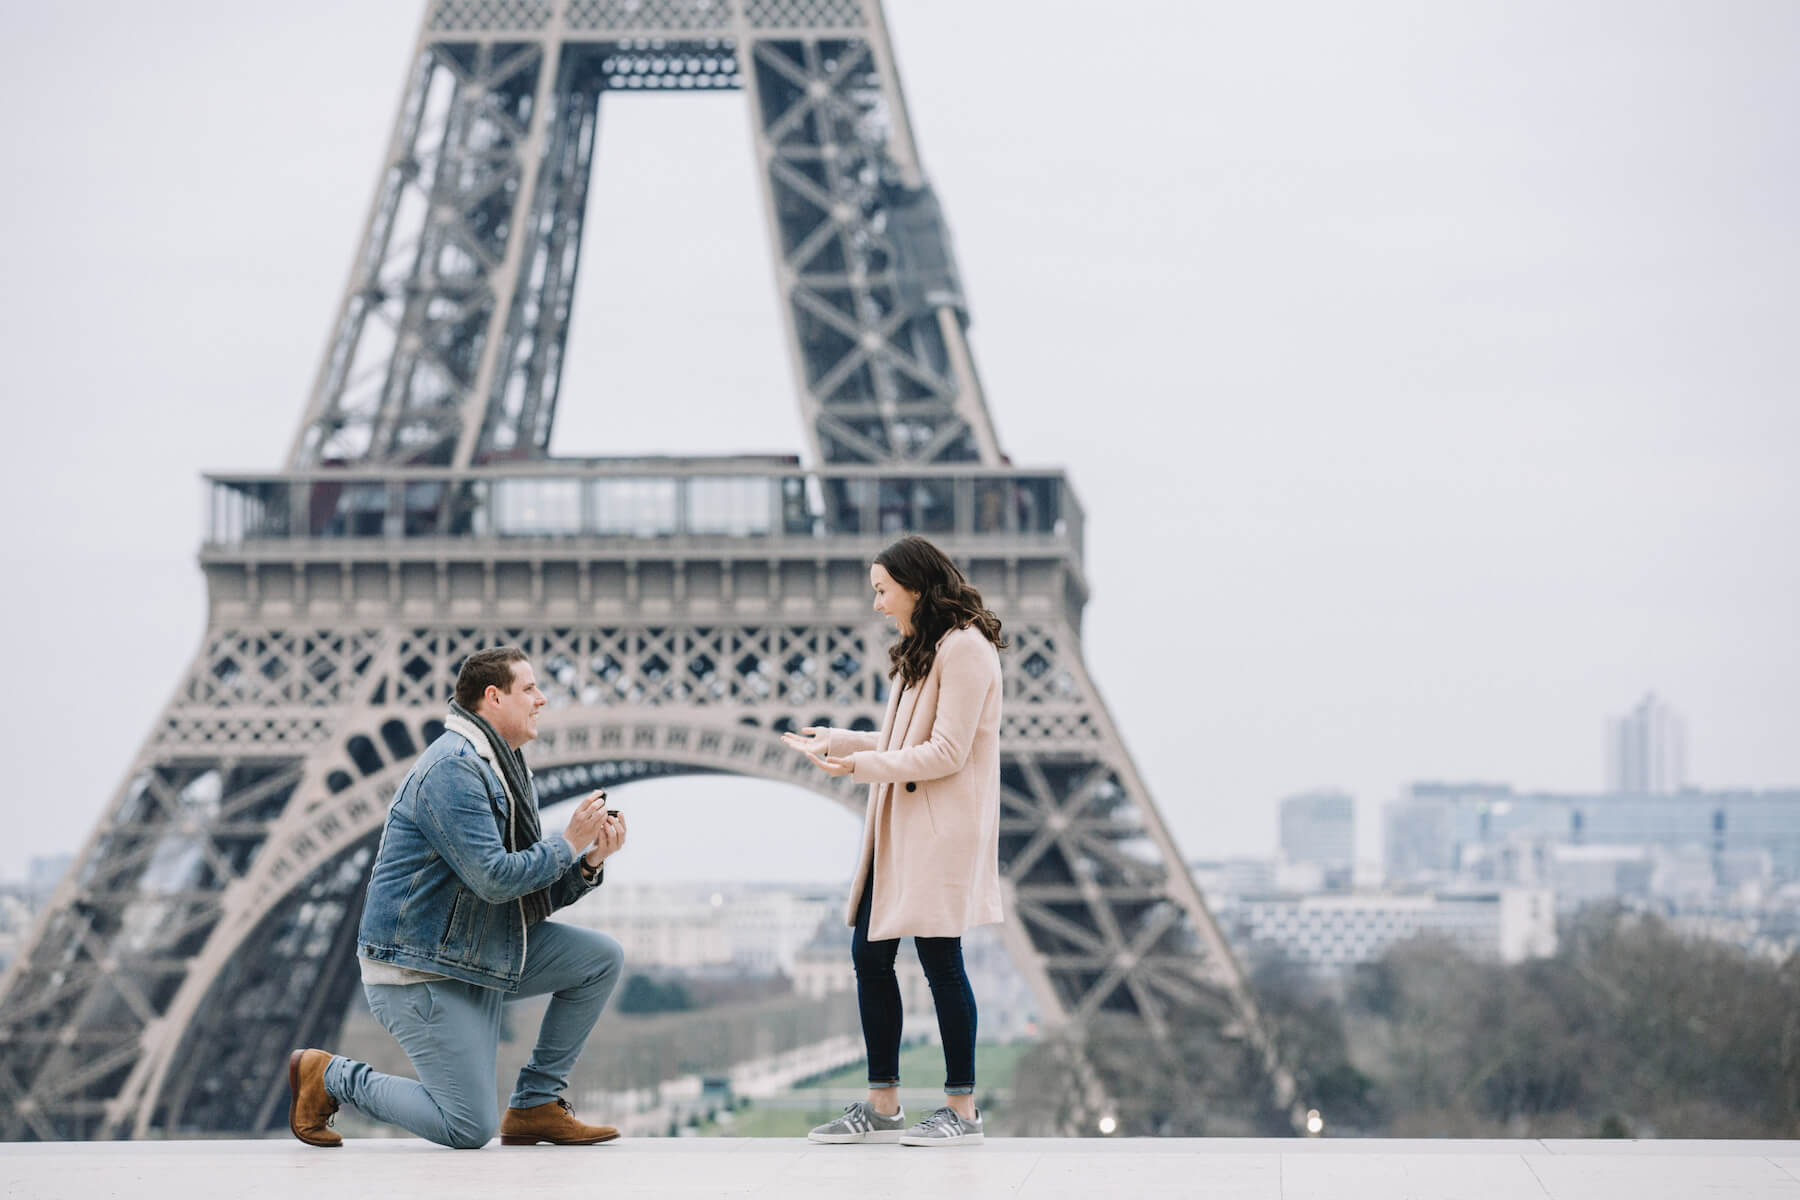 A woman being proposed to, in front of the Eiffel tower in Paris, France